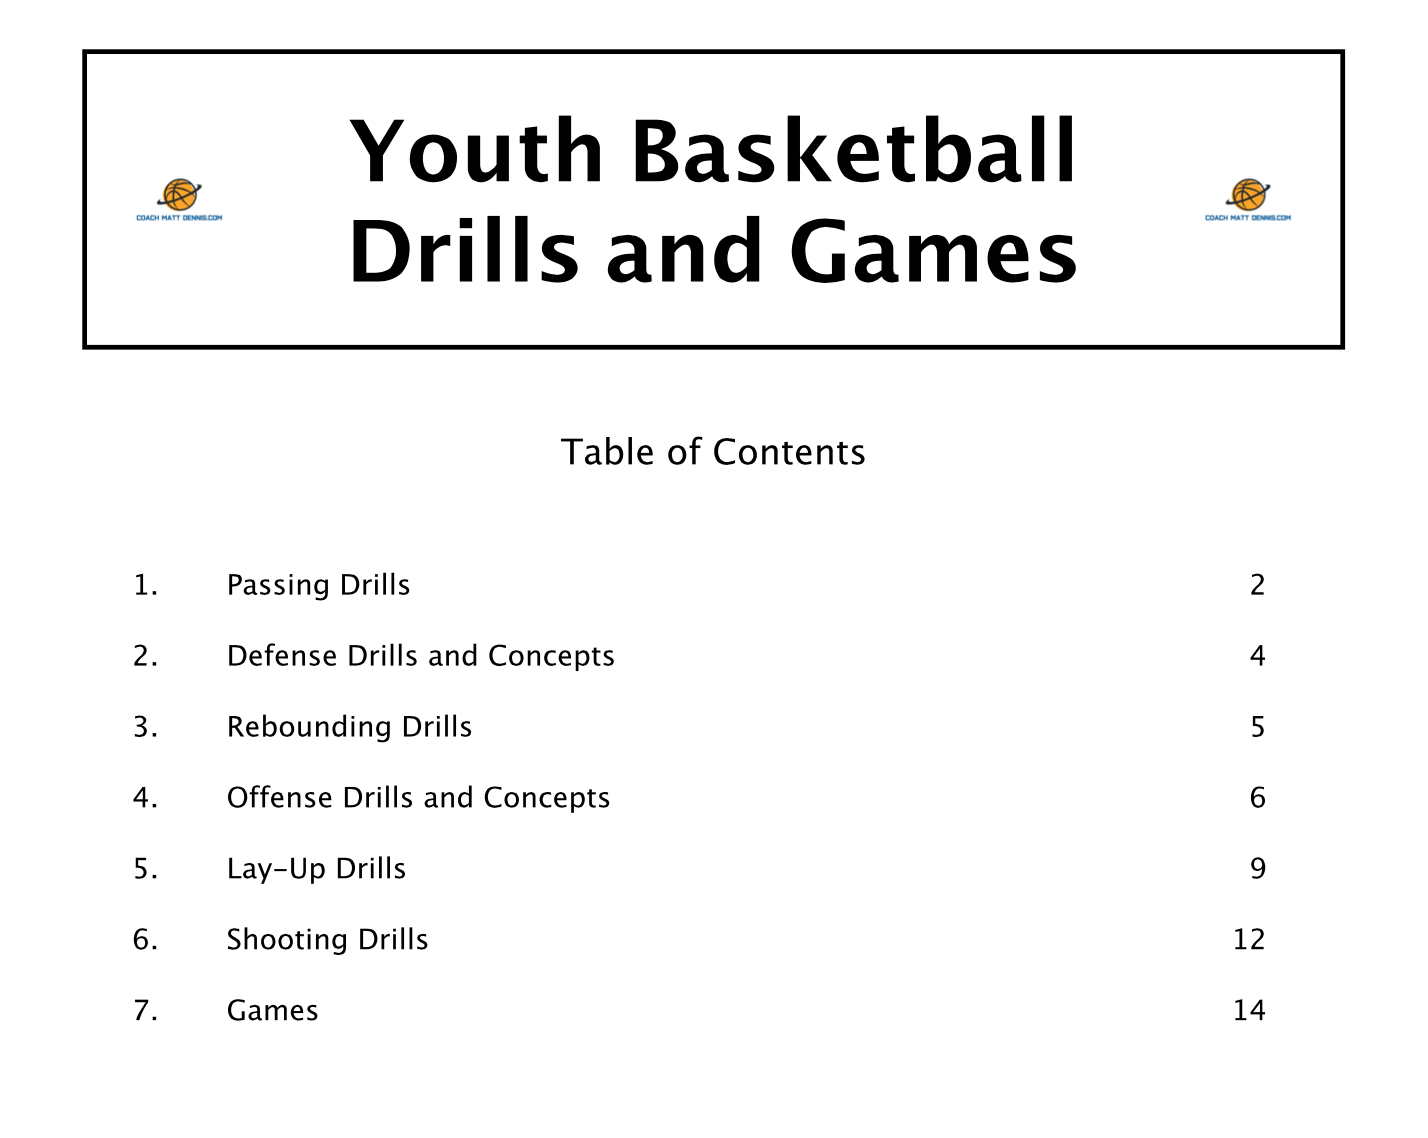 Youth Basketball Drill List